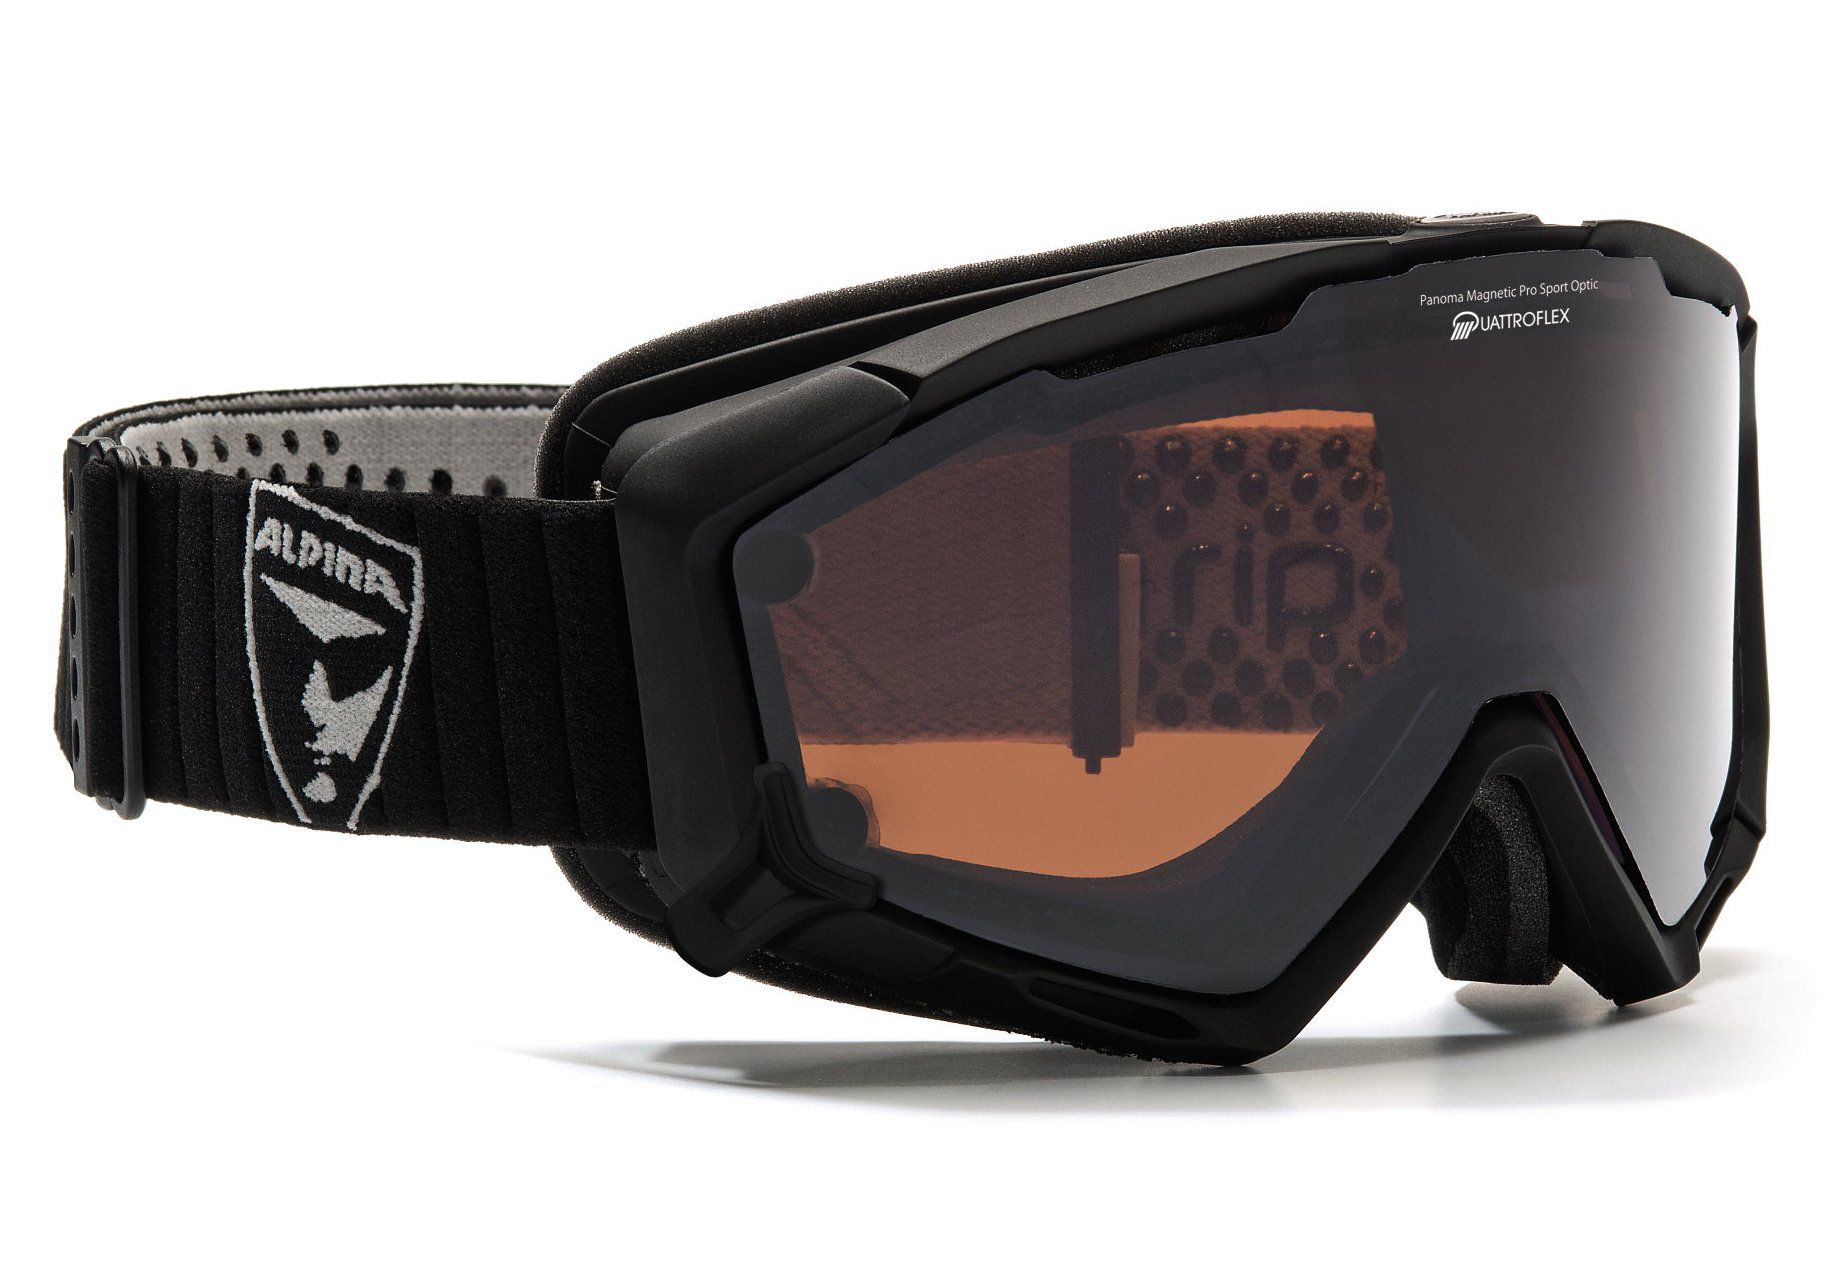 ALPINA SPORT Skibrille, schwarz matt, Alpina, »Panoma Magnetic«, Made in Germany